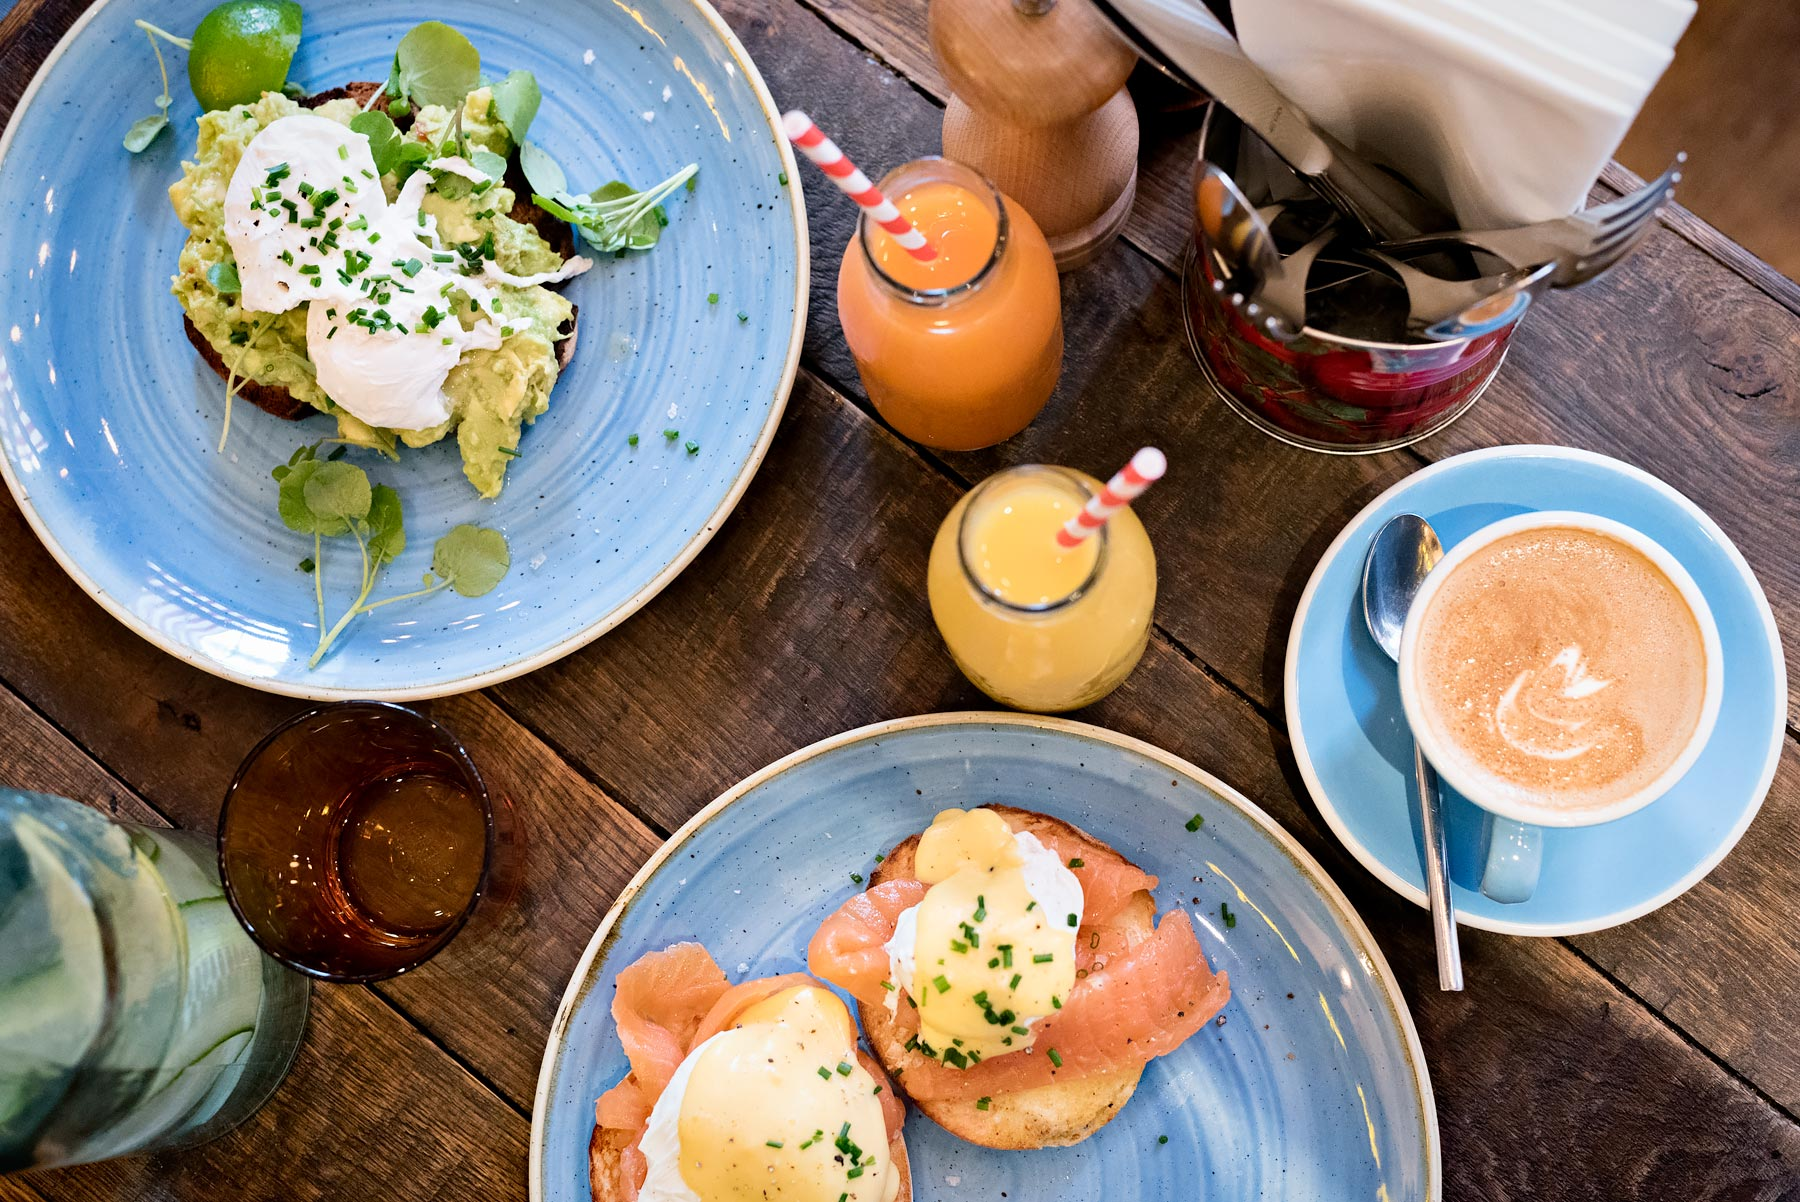 The Cambridge Street Kitchen | Amazing Place For Brunch In Pimlico, London